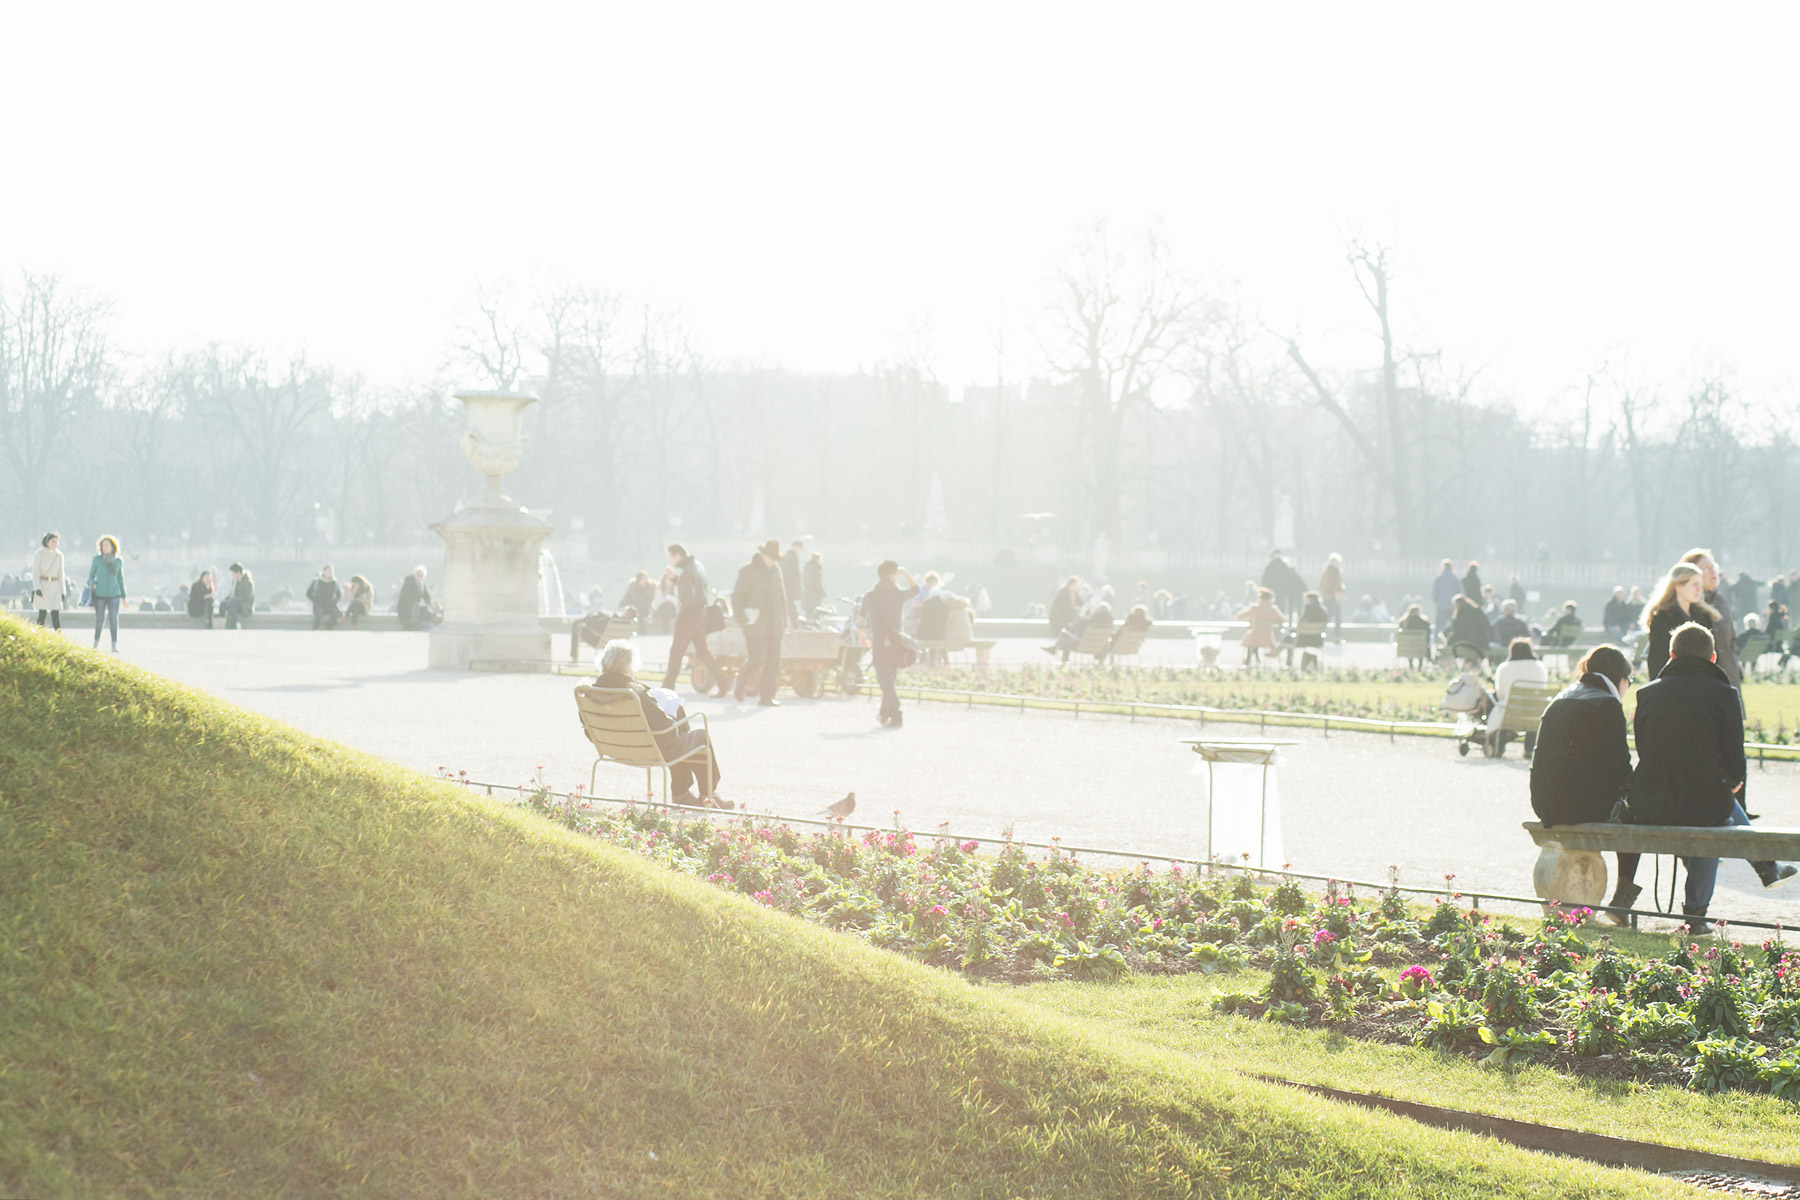 Jardin du Luxembourg photo by Carin Olsson (Paris in Four Months)